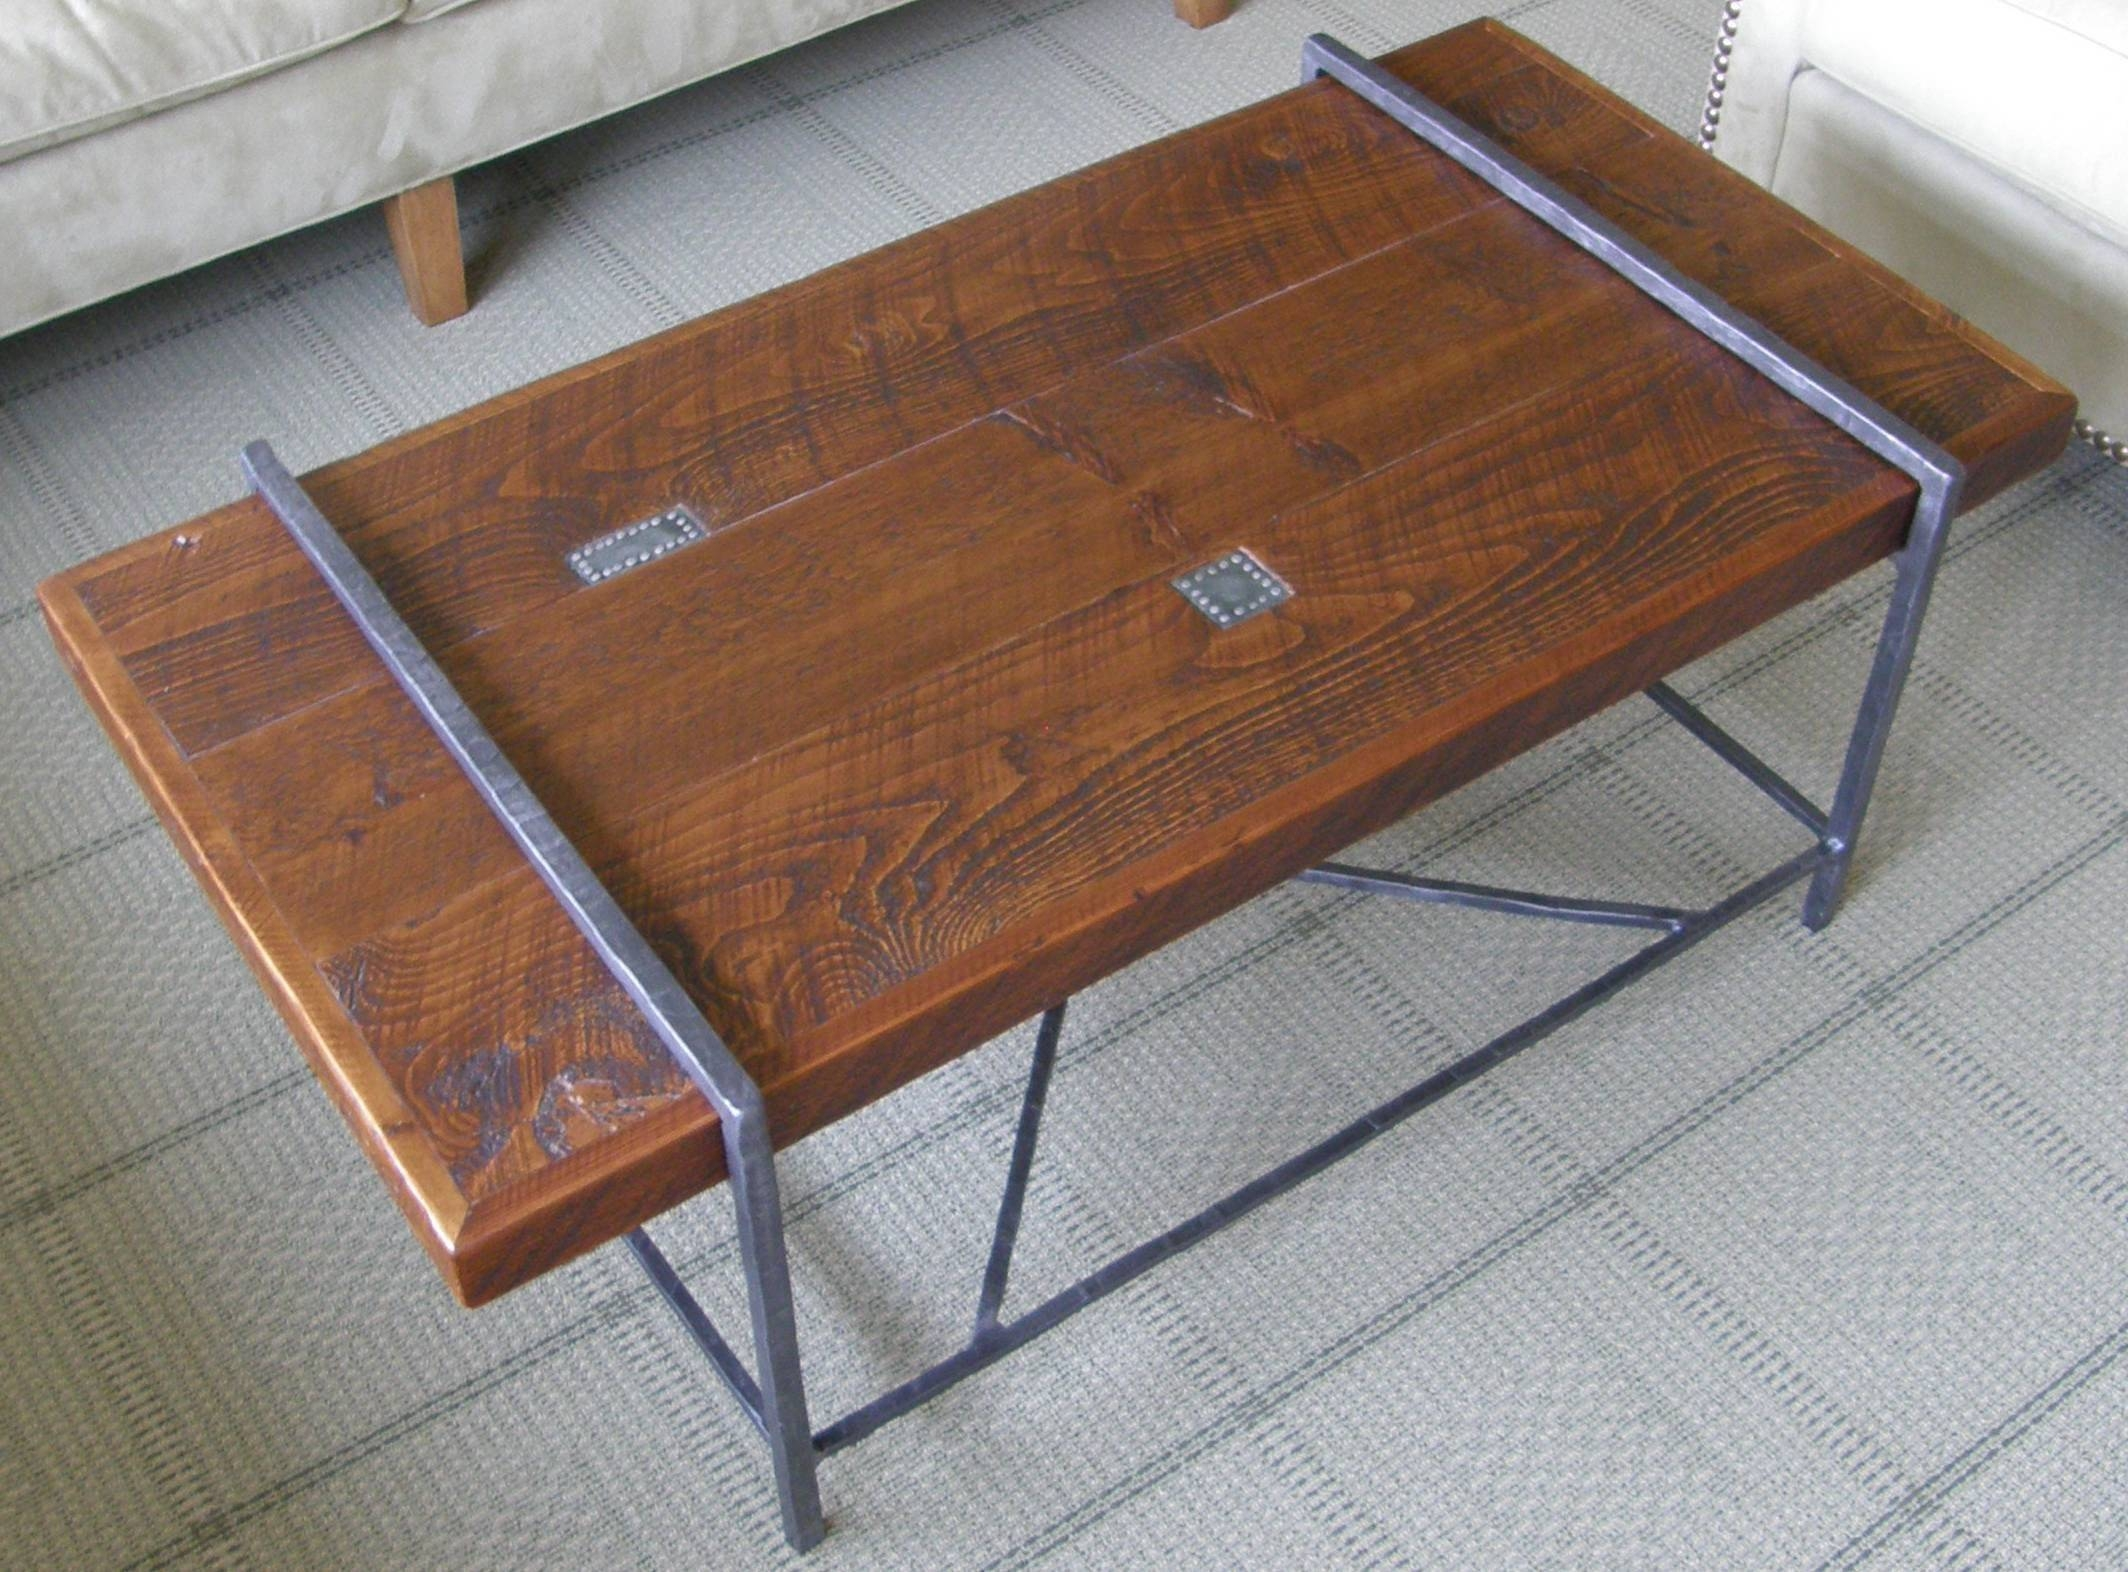 Reclaimed Wood Coffee Table Top With Metal Base - Youtube regarding Steel and Wood Coffee Tables (Image 13 of 15)